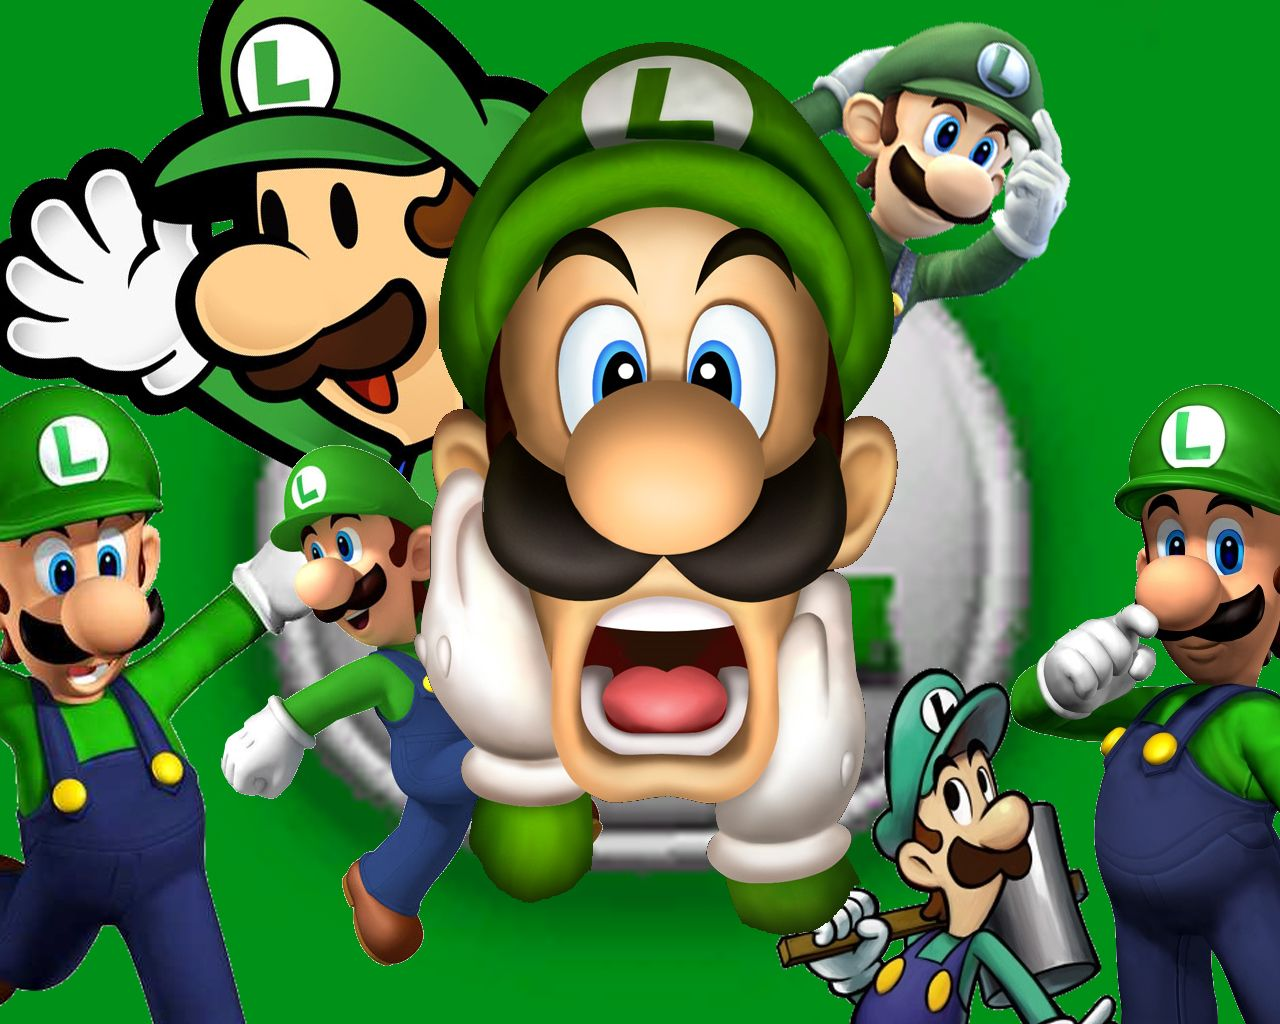 Luigi super mario bros wallpaper nintendoooooo pinterest hd wallpaper and background photos of luigi for fans of super mario bros altavistaventures Gallery